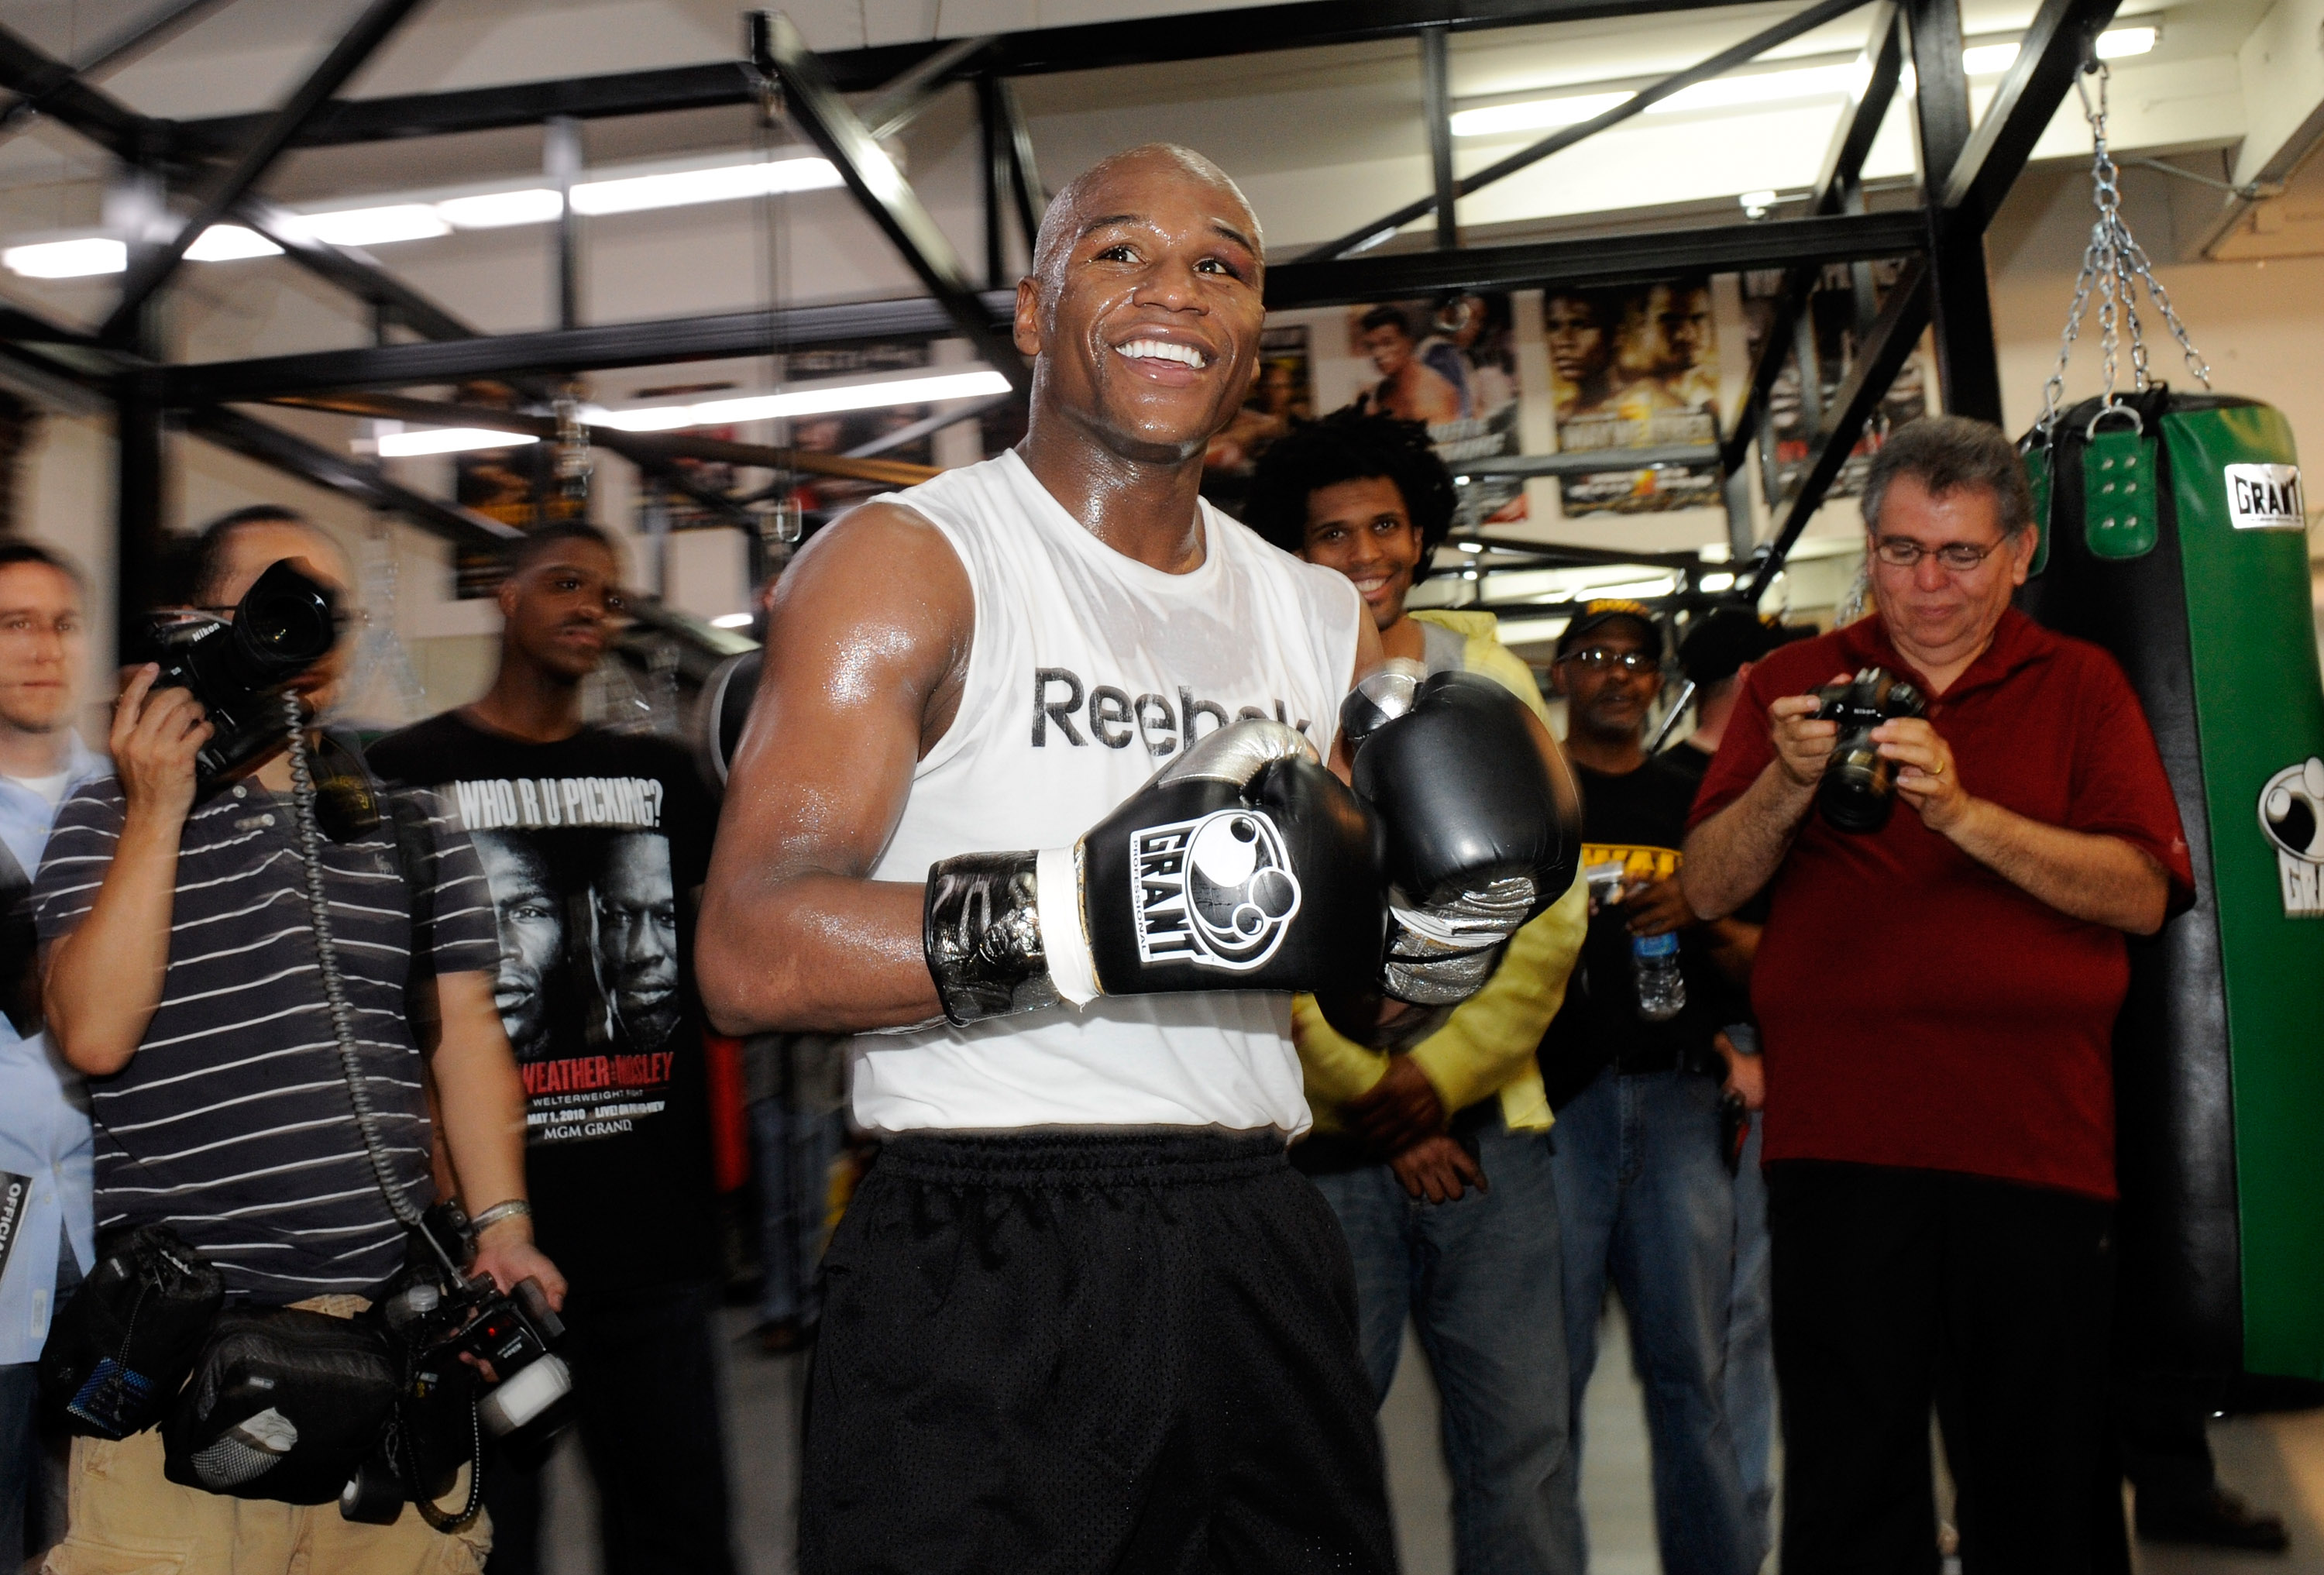 LAS VEGAS - APRIL 14:  Boxer Floyd Mayweather Jr. smiles during a workout April 14, 2010 in Las Vegas, Nevada. Mayweather is scheduled to face Shane Mosley in a 12-round welterweight bout on May 1, 2010 in Las Vegas.  (Photo by Ethan Miller/Getty Images)